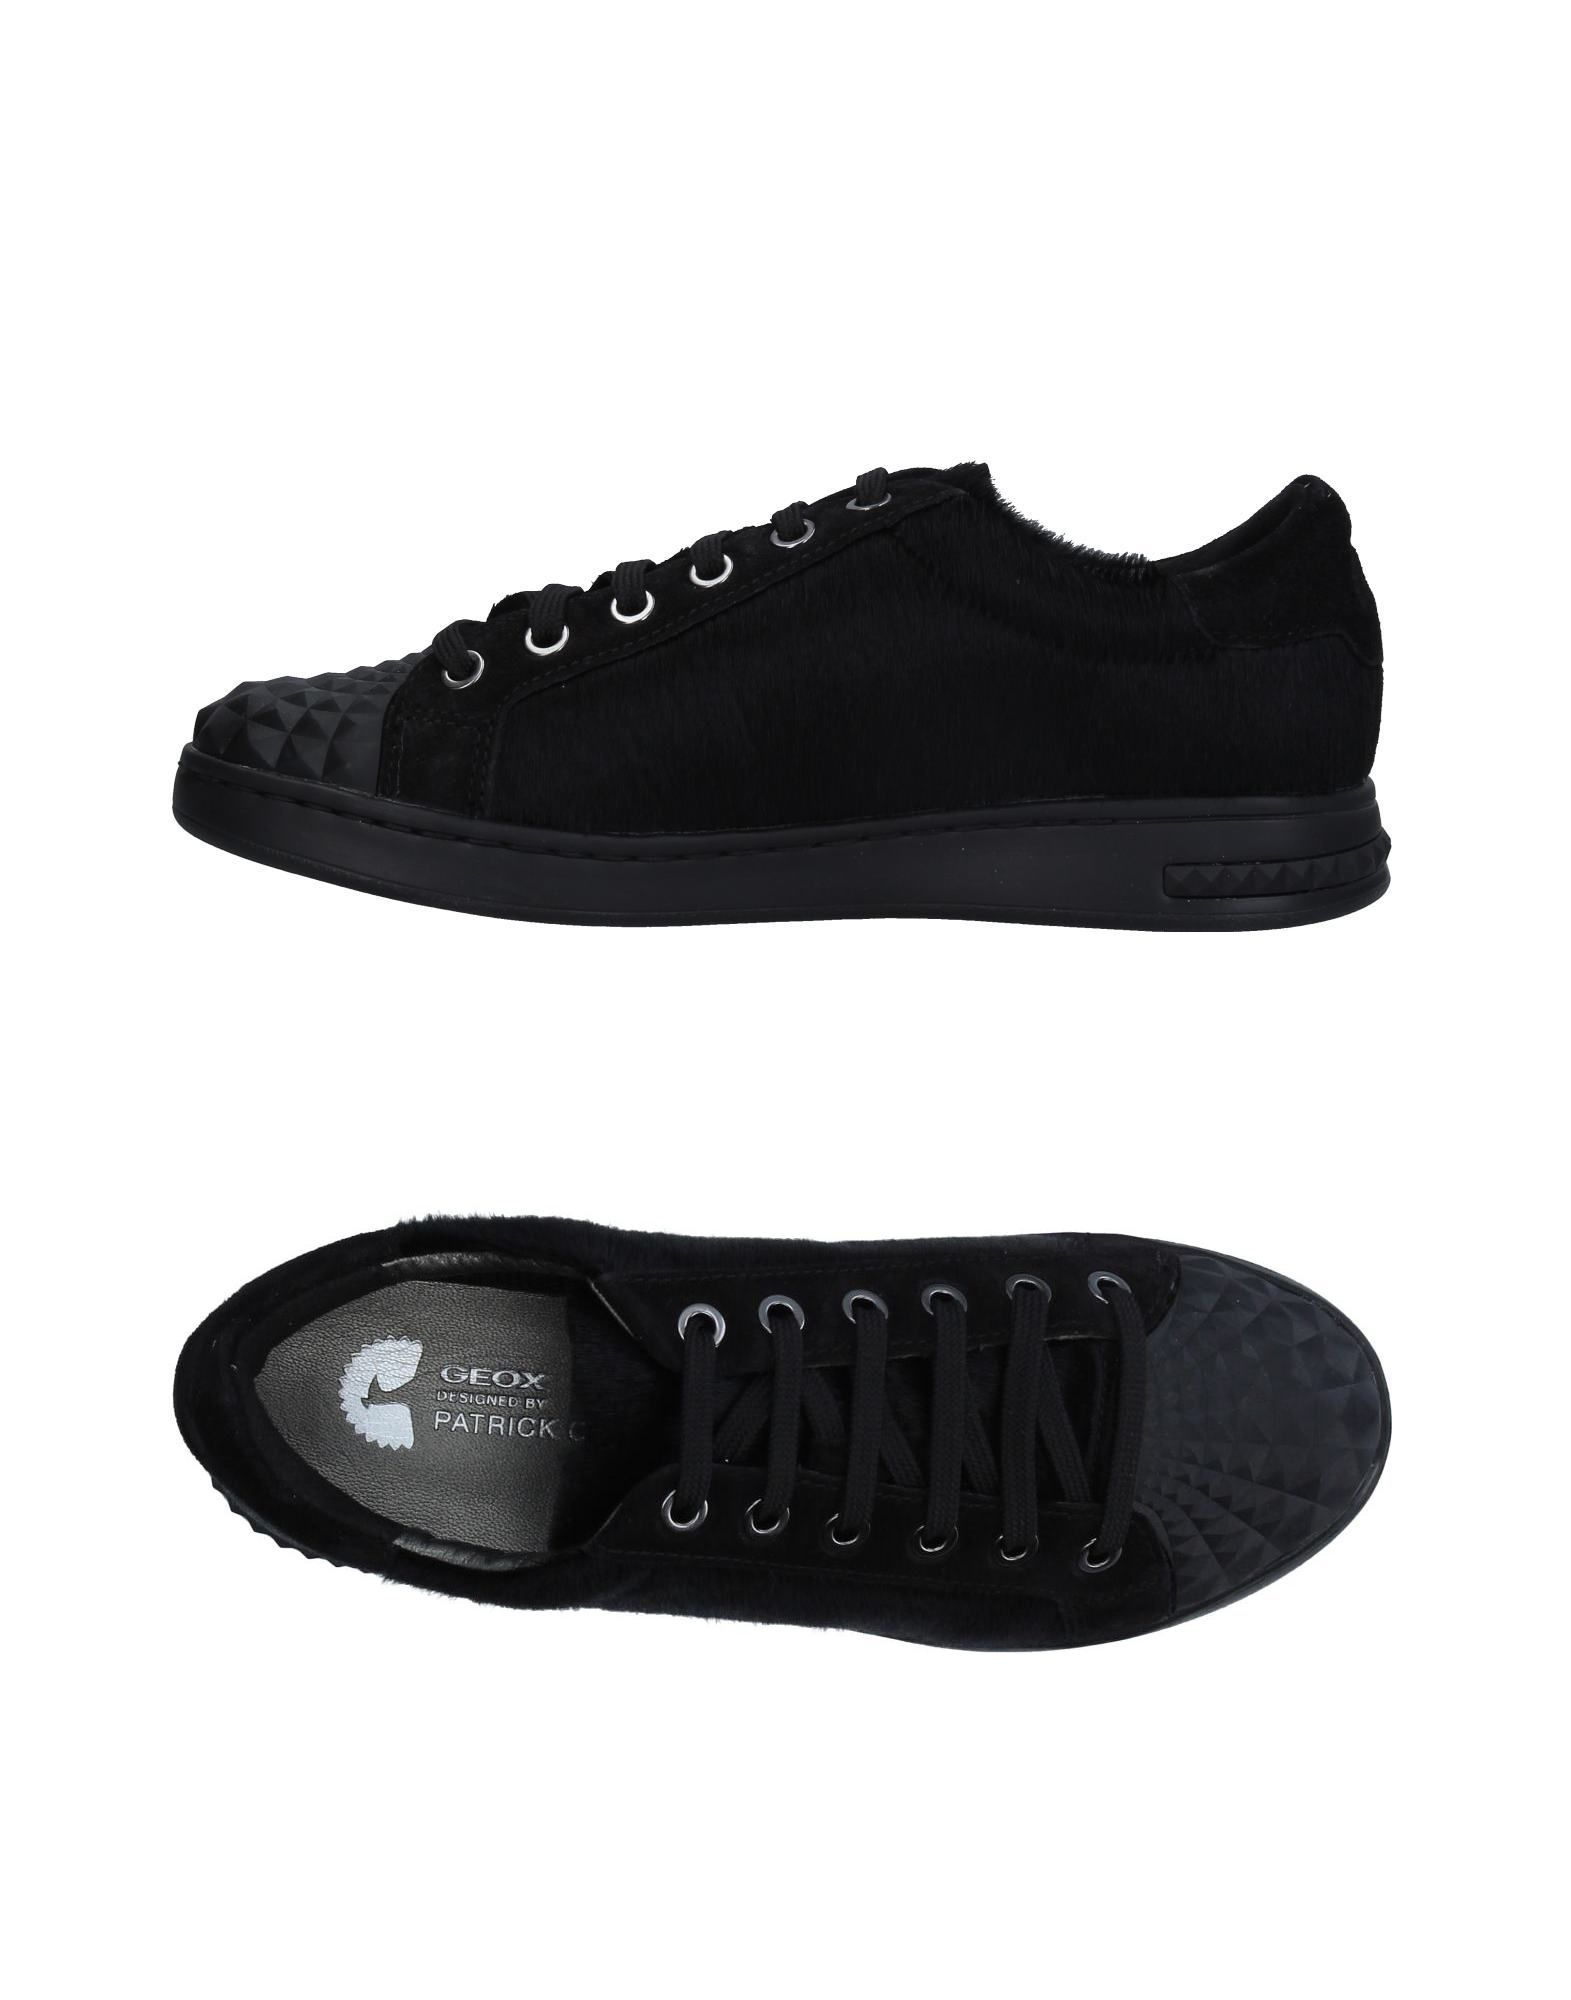 Sneakers Geox Designed By Patrick Cox Donna - 11317859AI